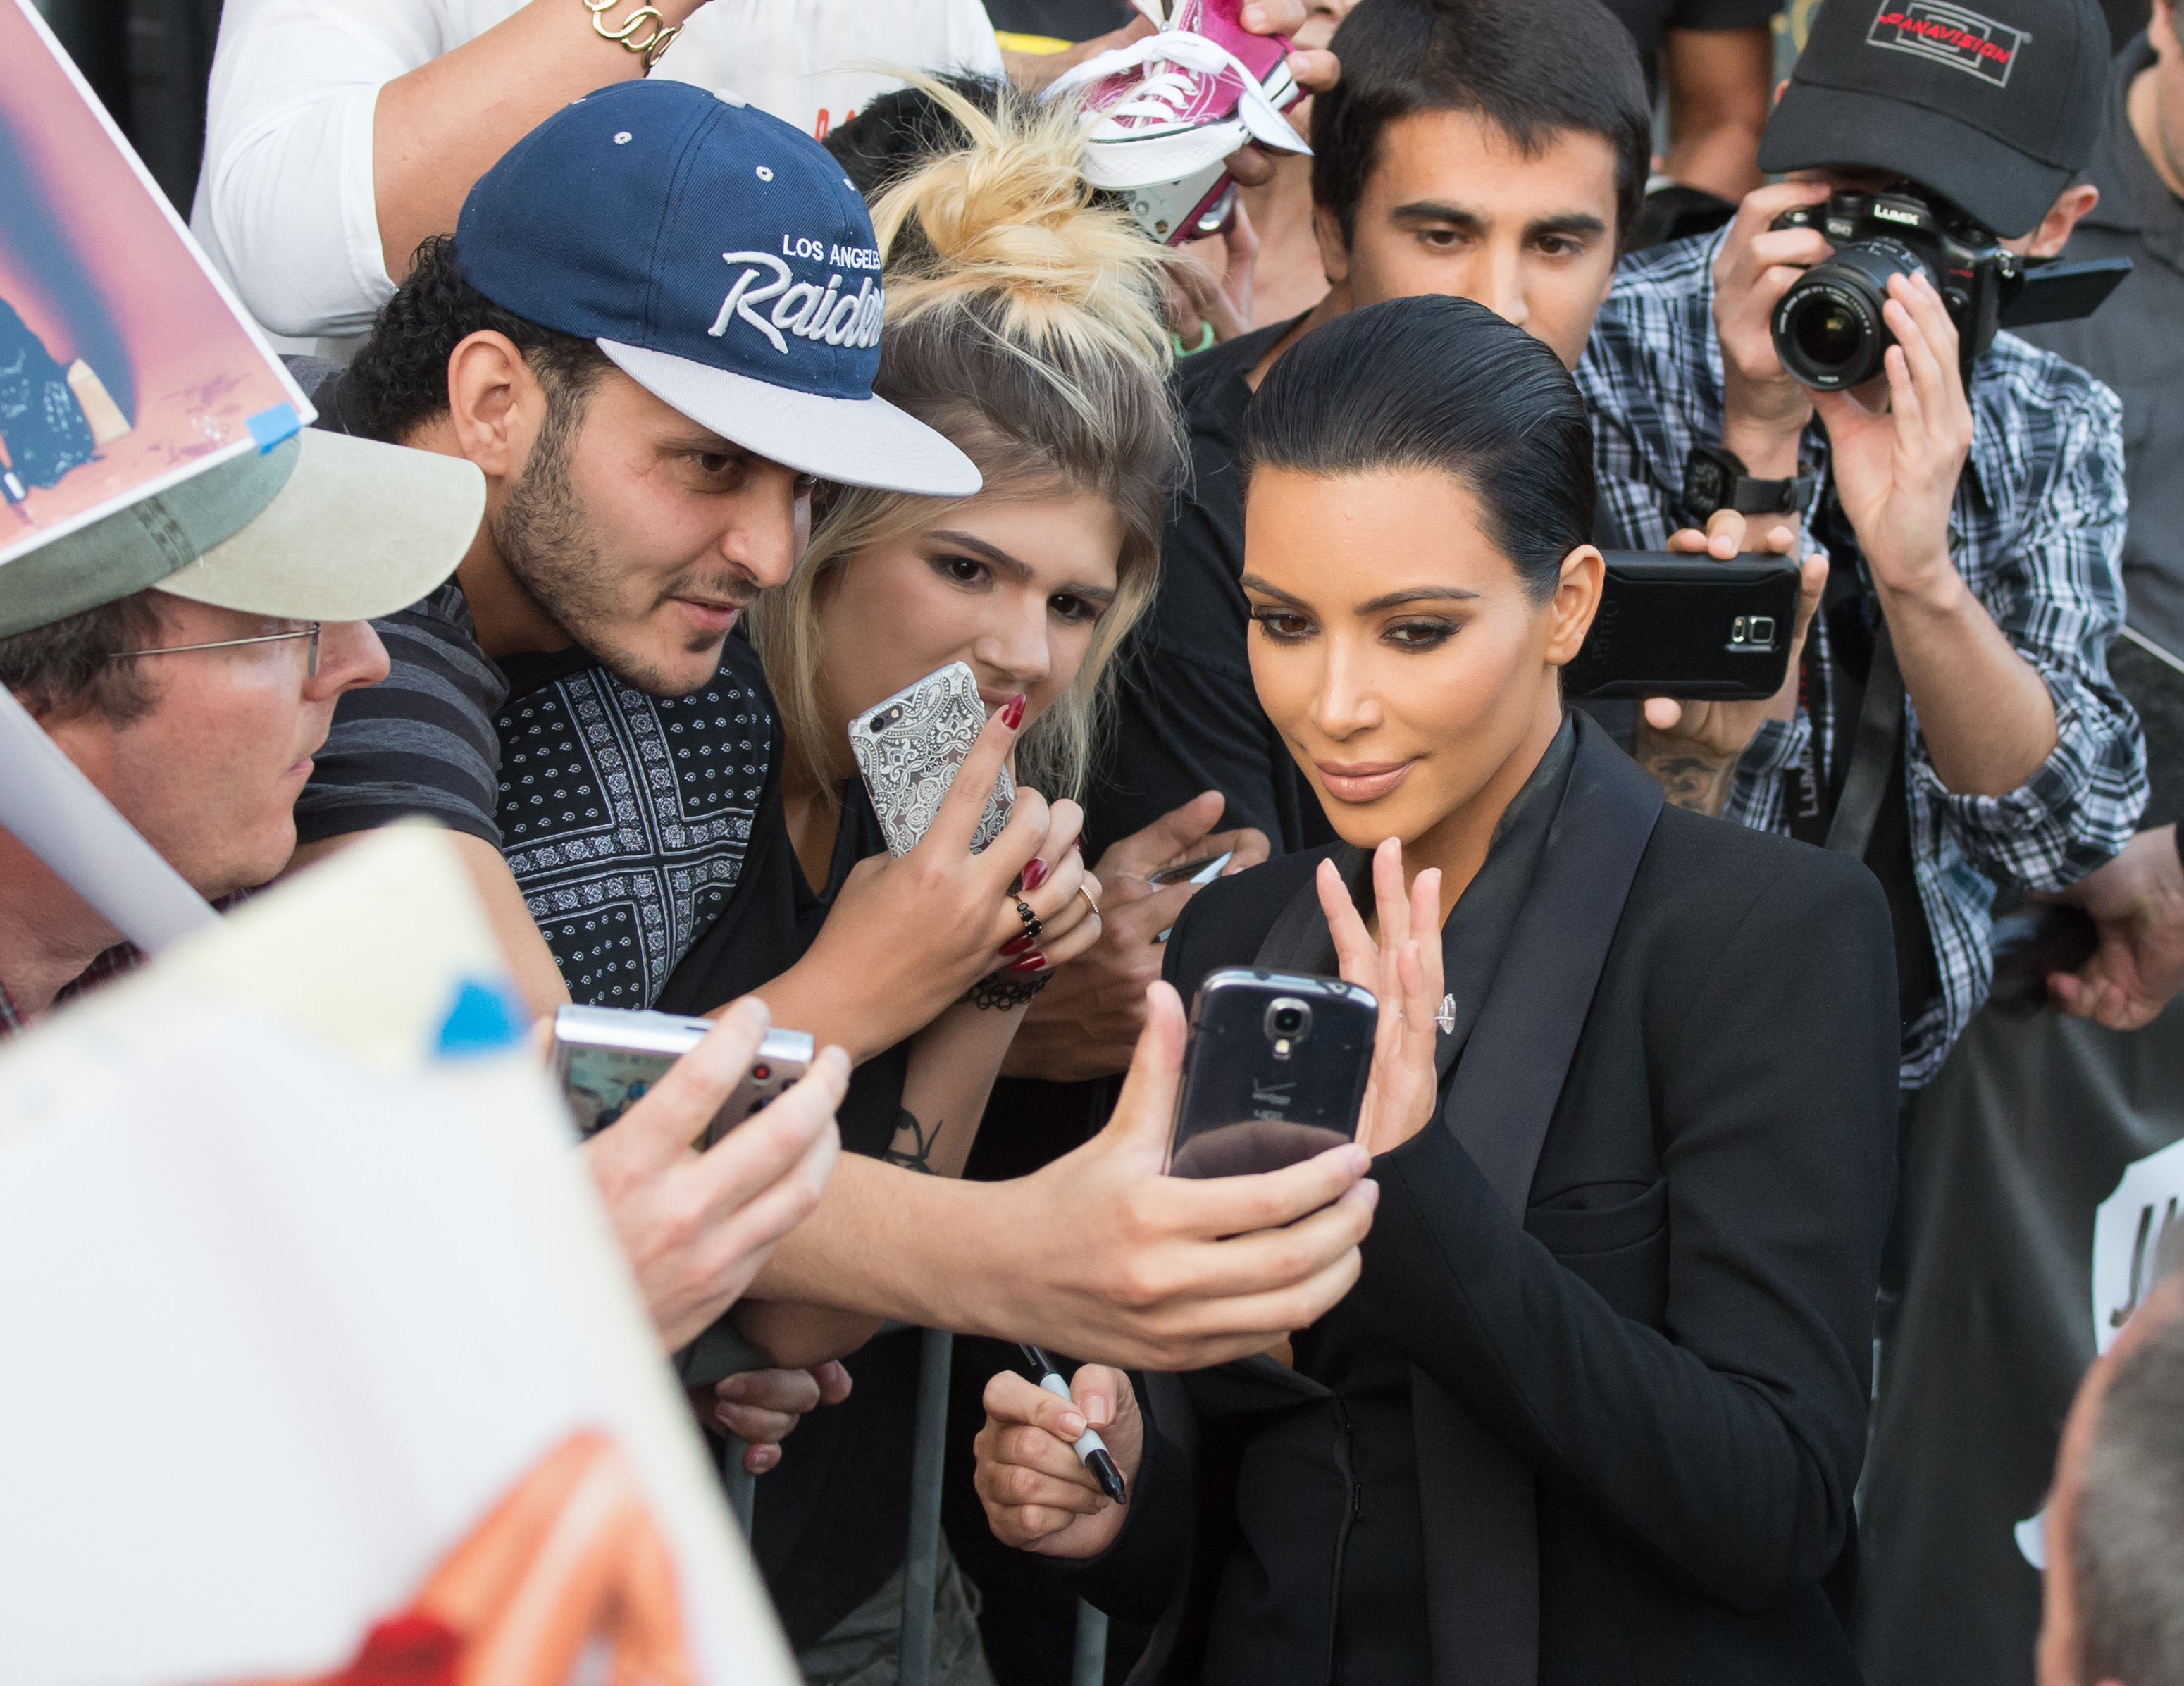 LOS ANGELES, CA - APRIL 30: Kim Kardashian is seen in Hollywood on April 30, 2015 in Los Angeles, California.  (Photo by RB/Bauer-Griffin/GC Images)